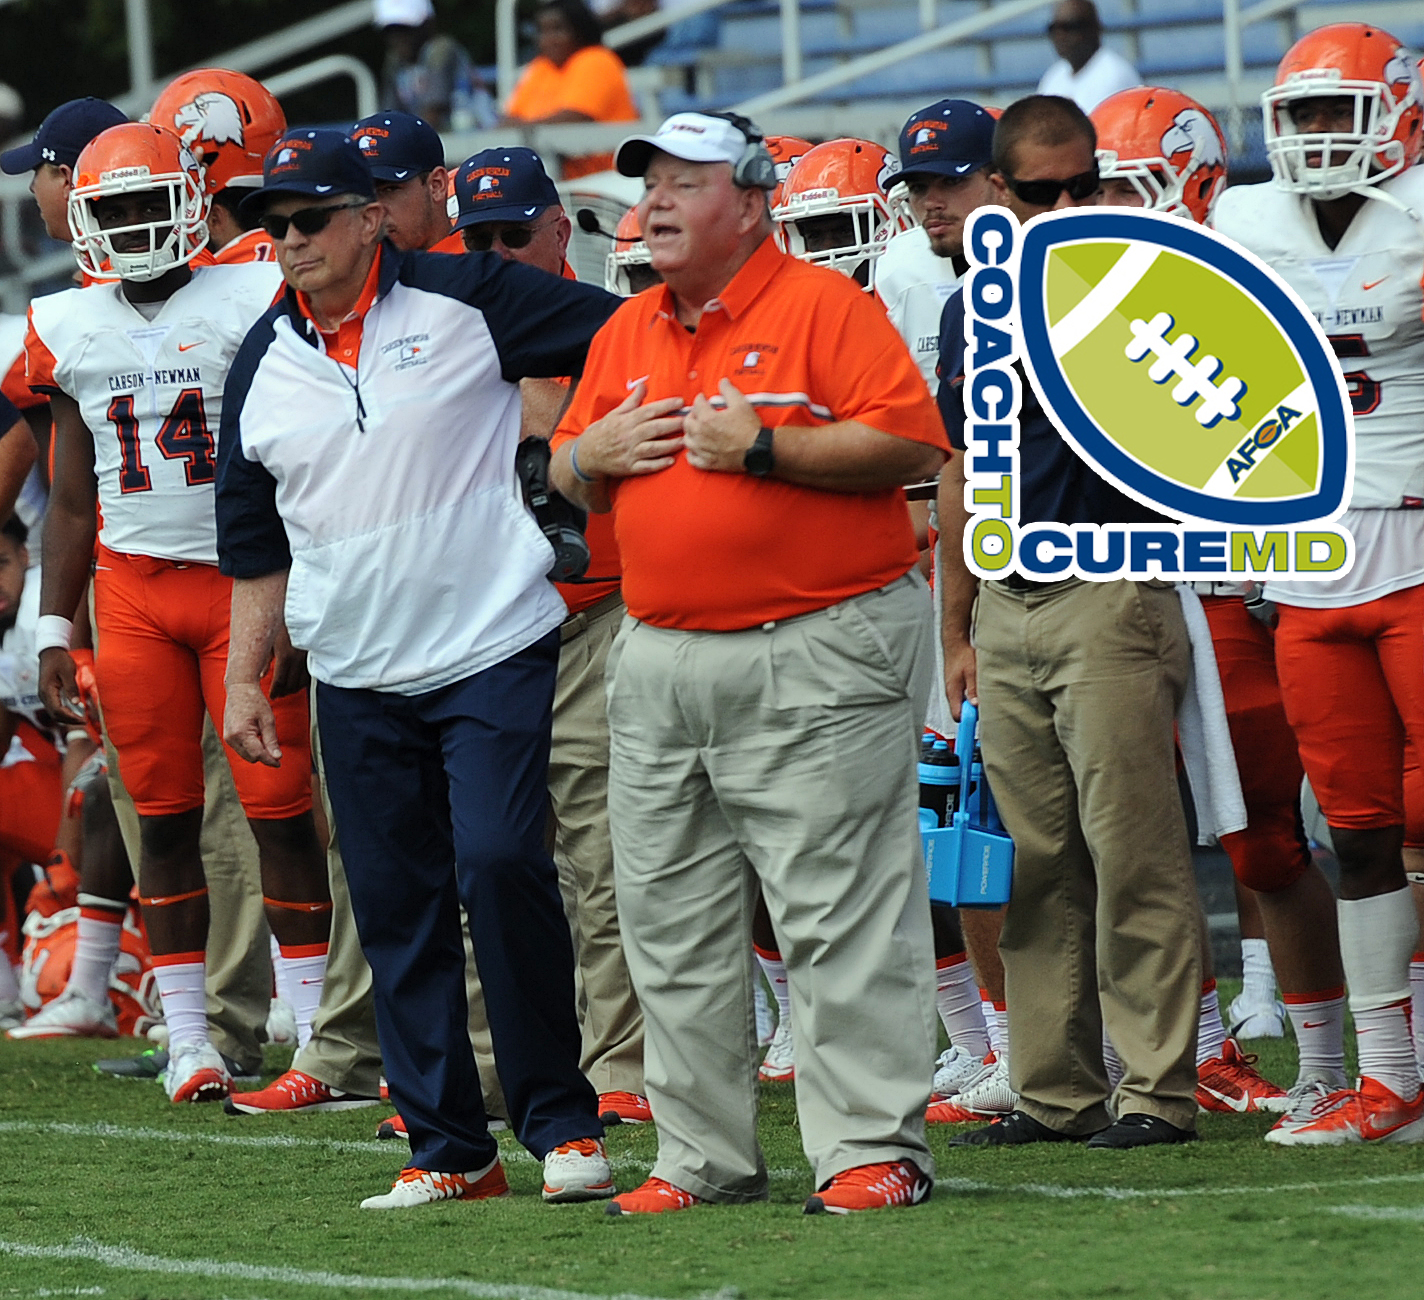 Carson-Newman football to participate in Coach To Cure MD week